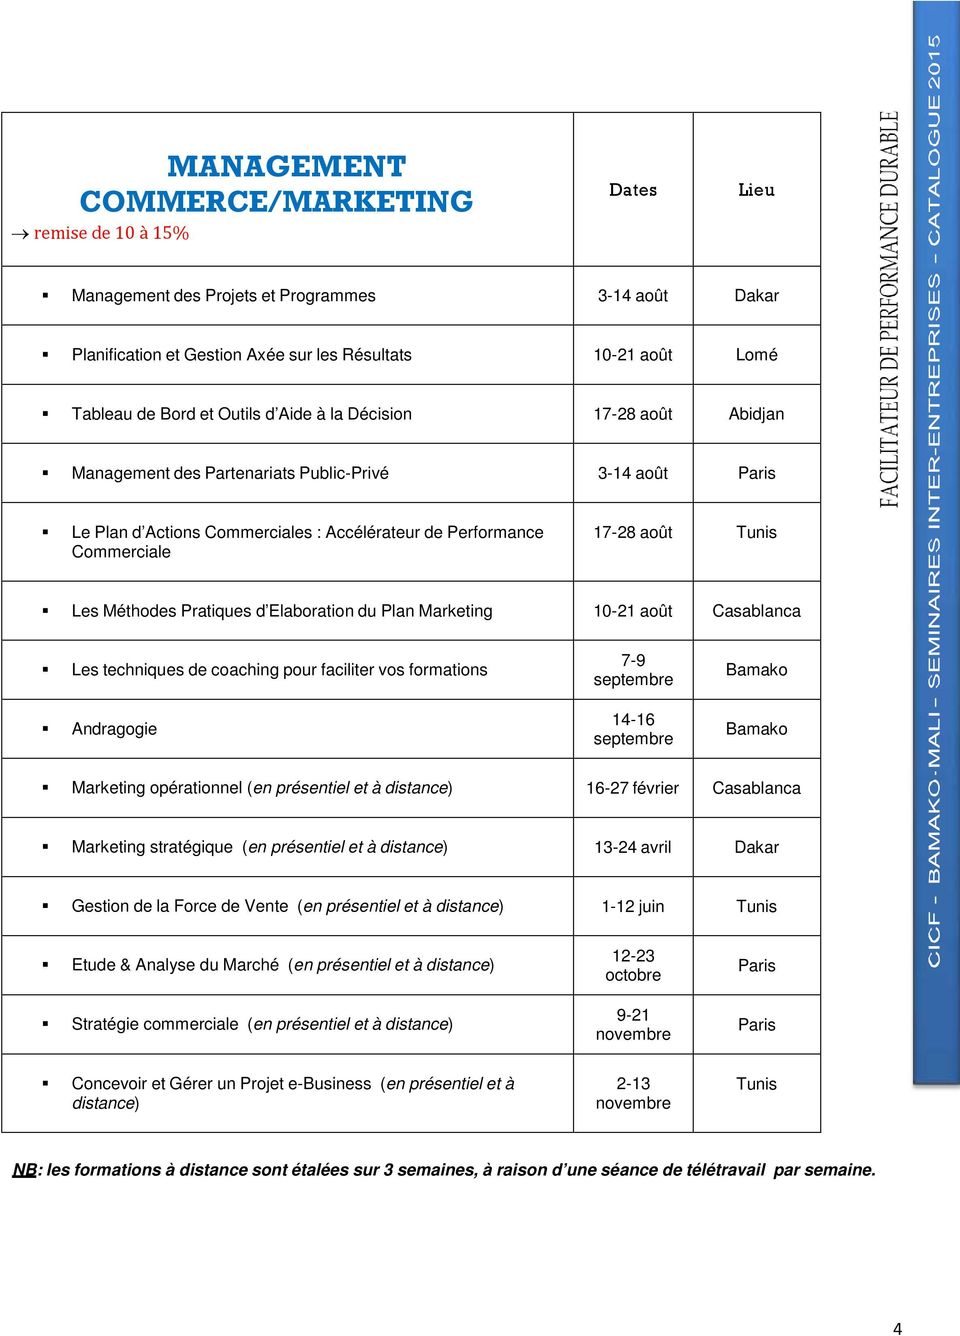 Méthodes Pratiques d Elaboration du Plan Marketing 10-21 août Casablanca Les techniques de coaching pour faciliter vos formations Andragogie 7-9 septembre 14-16 septembre Bamako Bamako Marketing